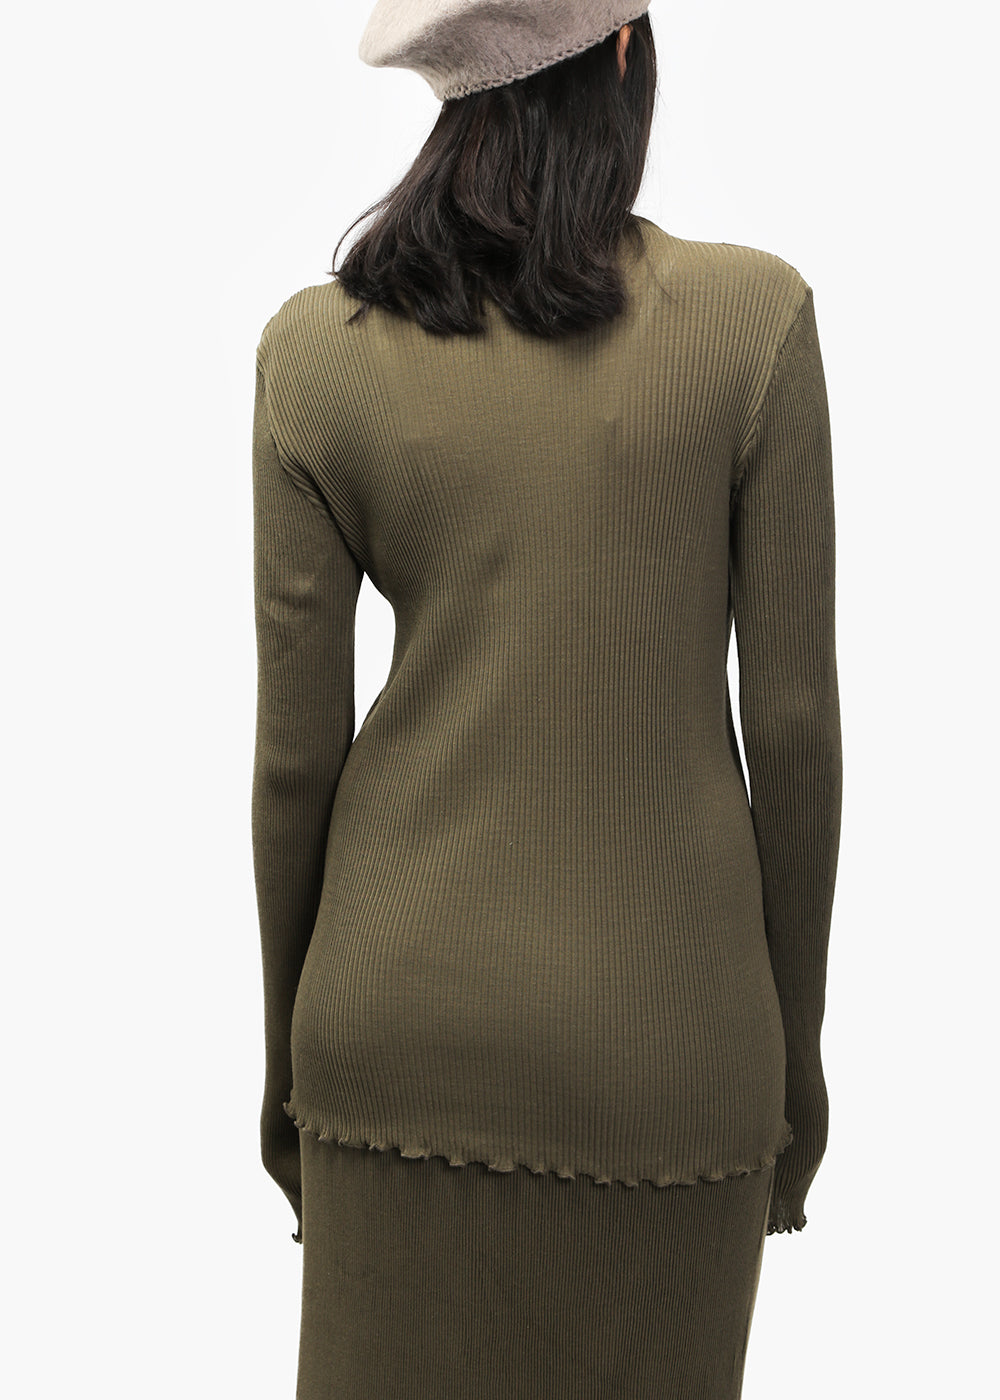 Lauren Manoogian Olive Accordion Turtleneck — Shop sustainable fashion and slow fashion at New Classics Studios